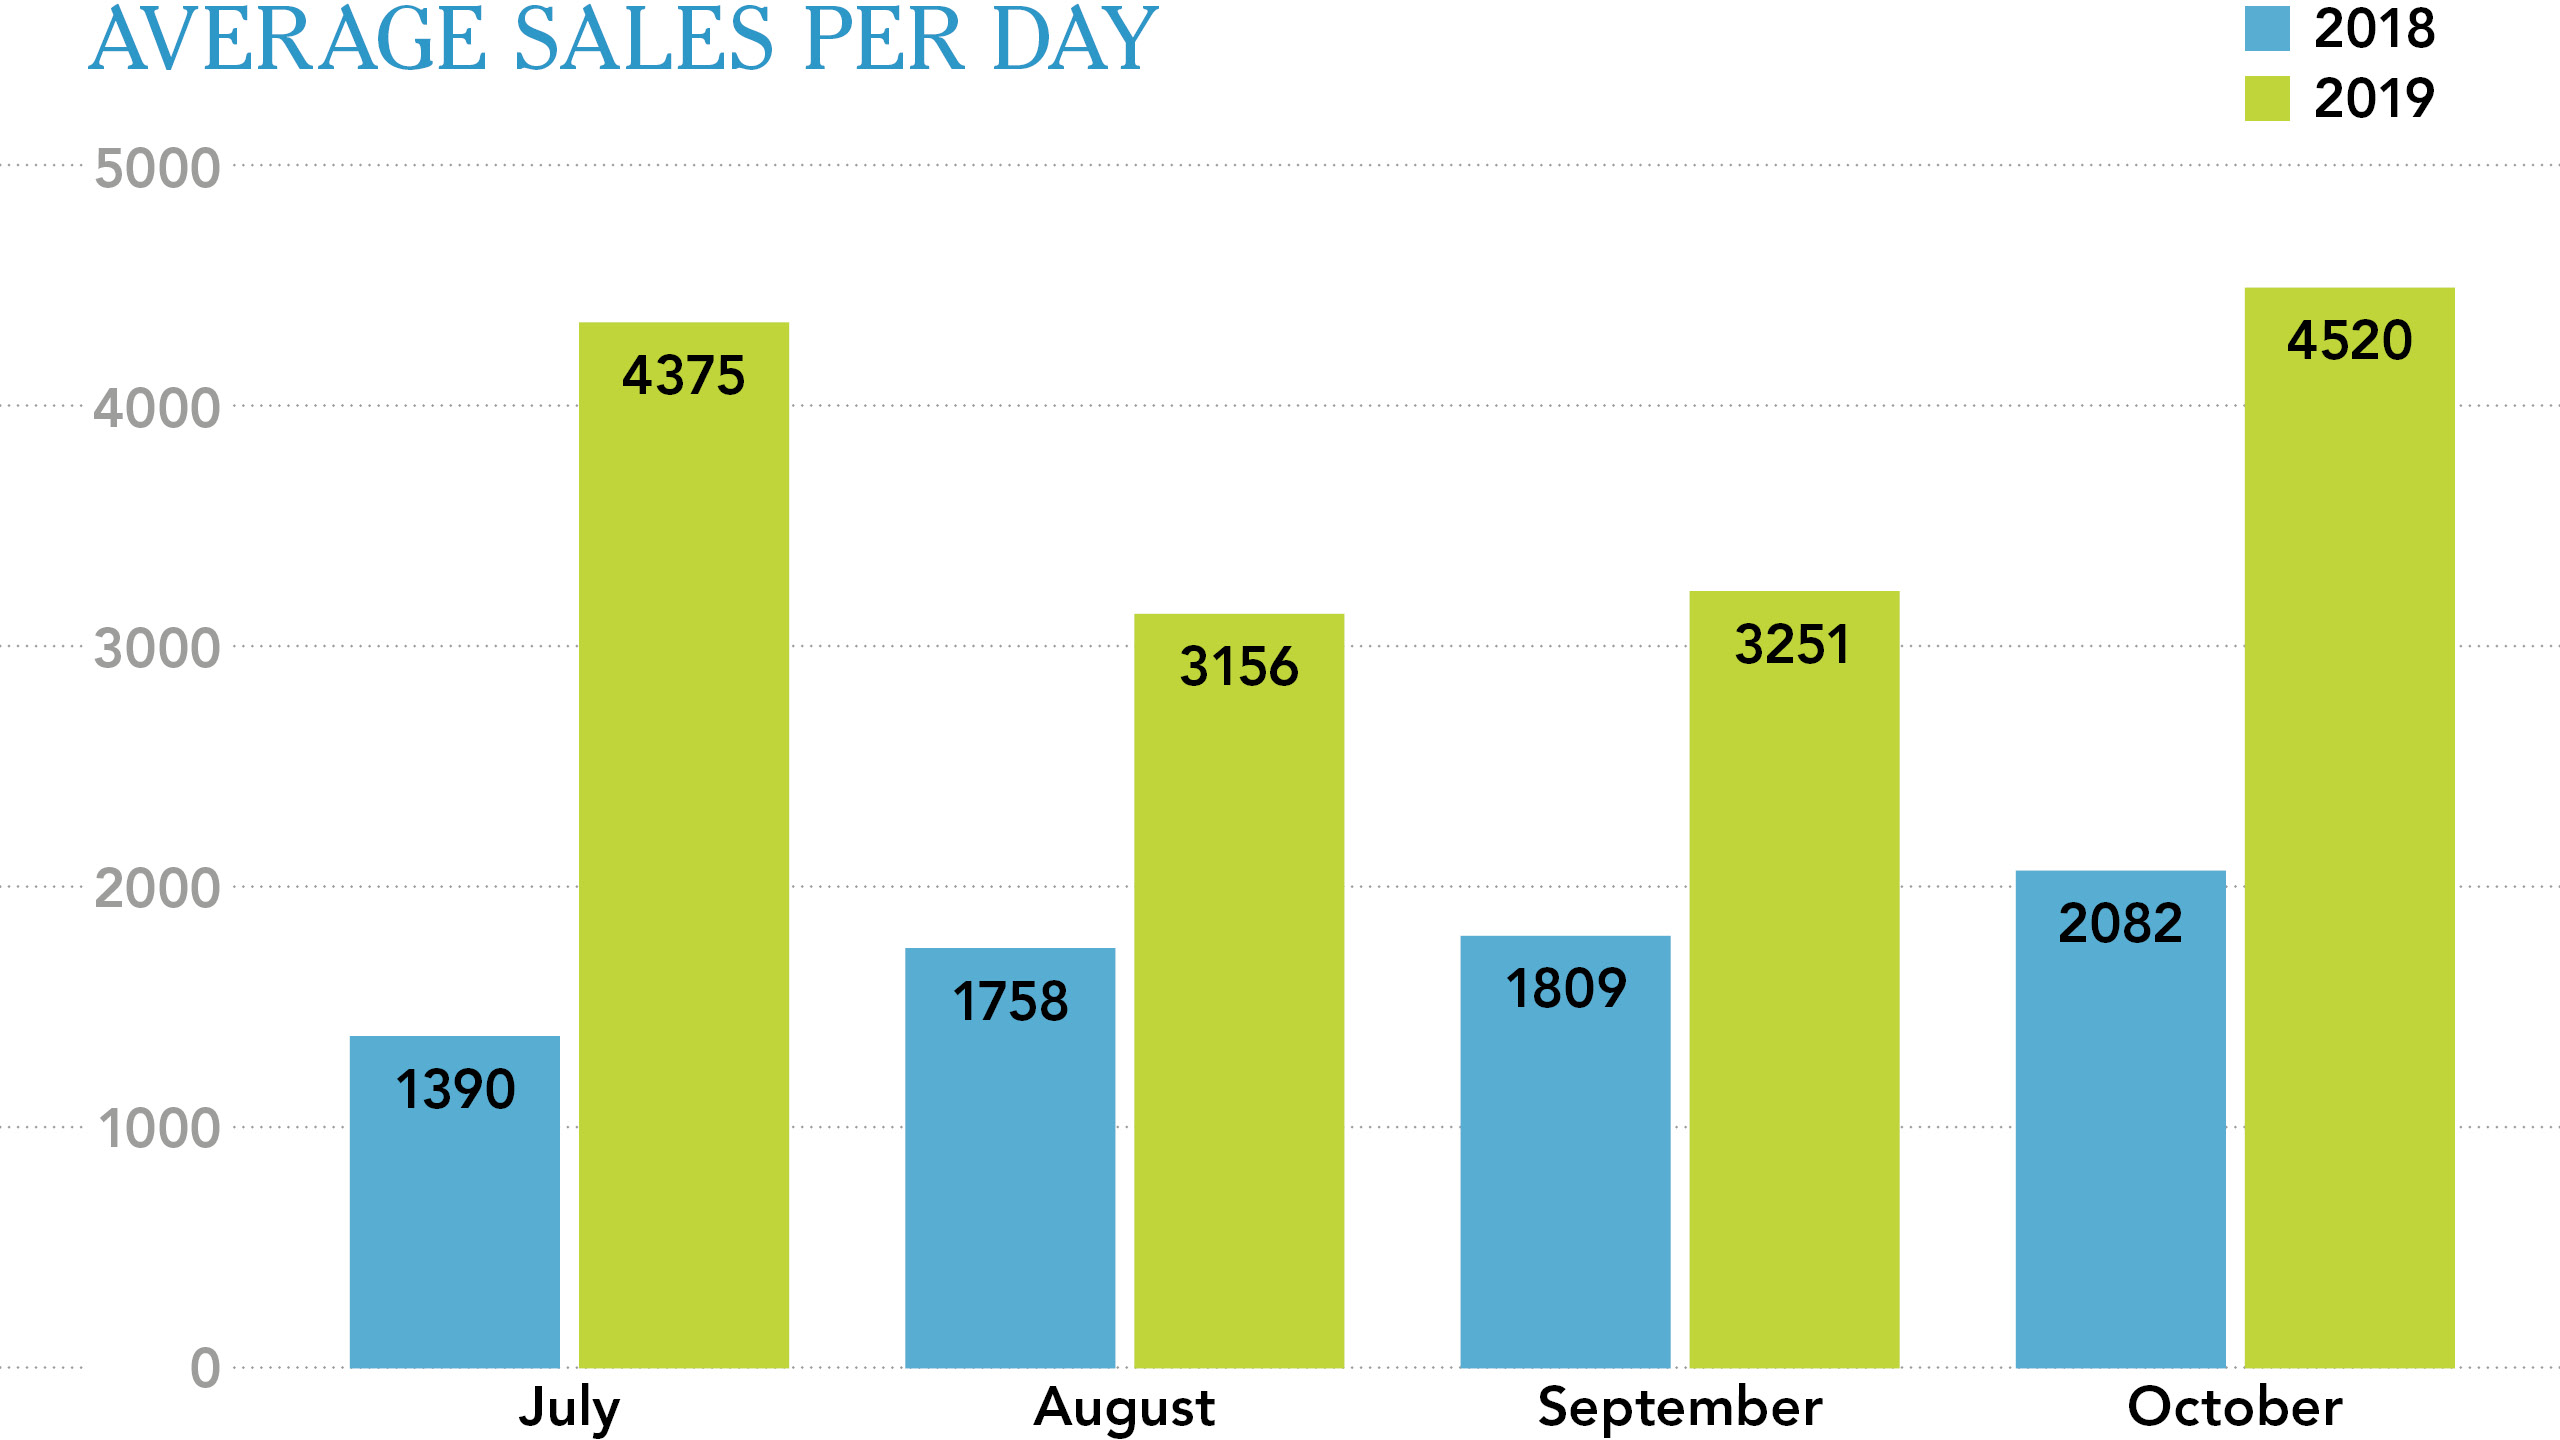 Average sales per day